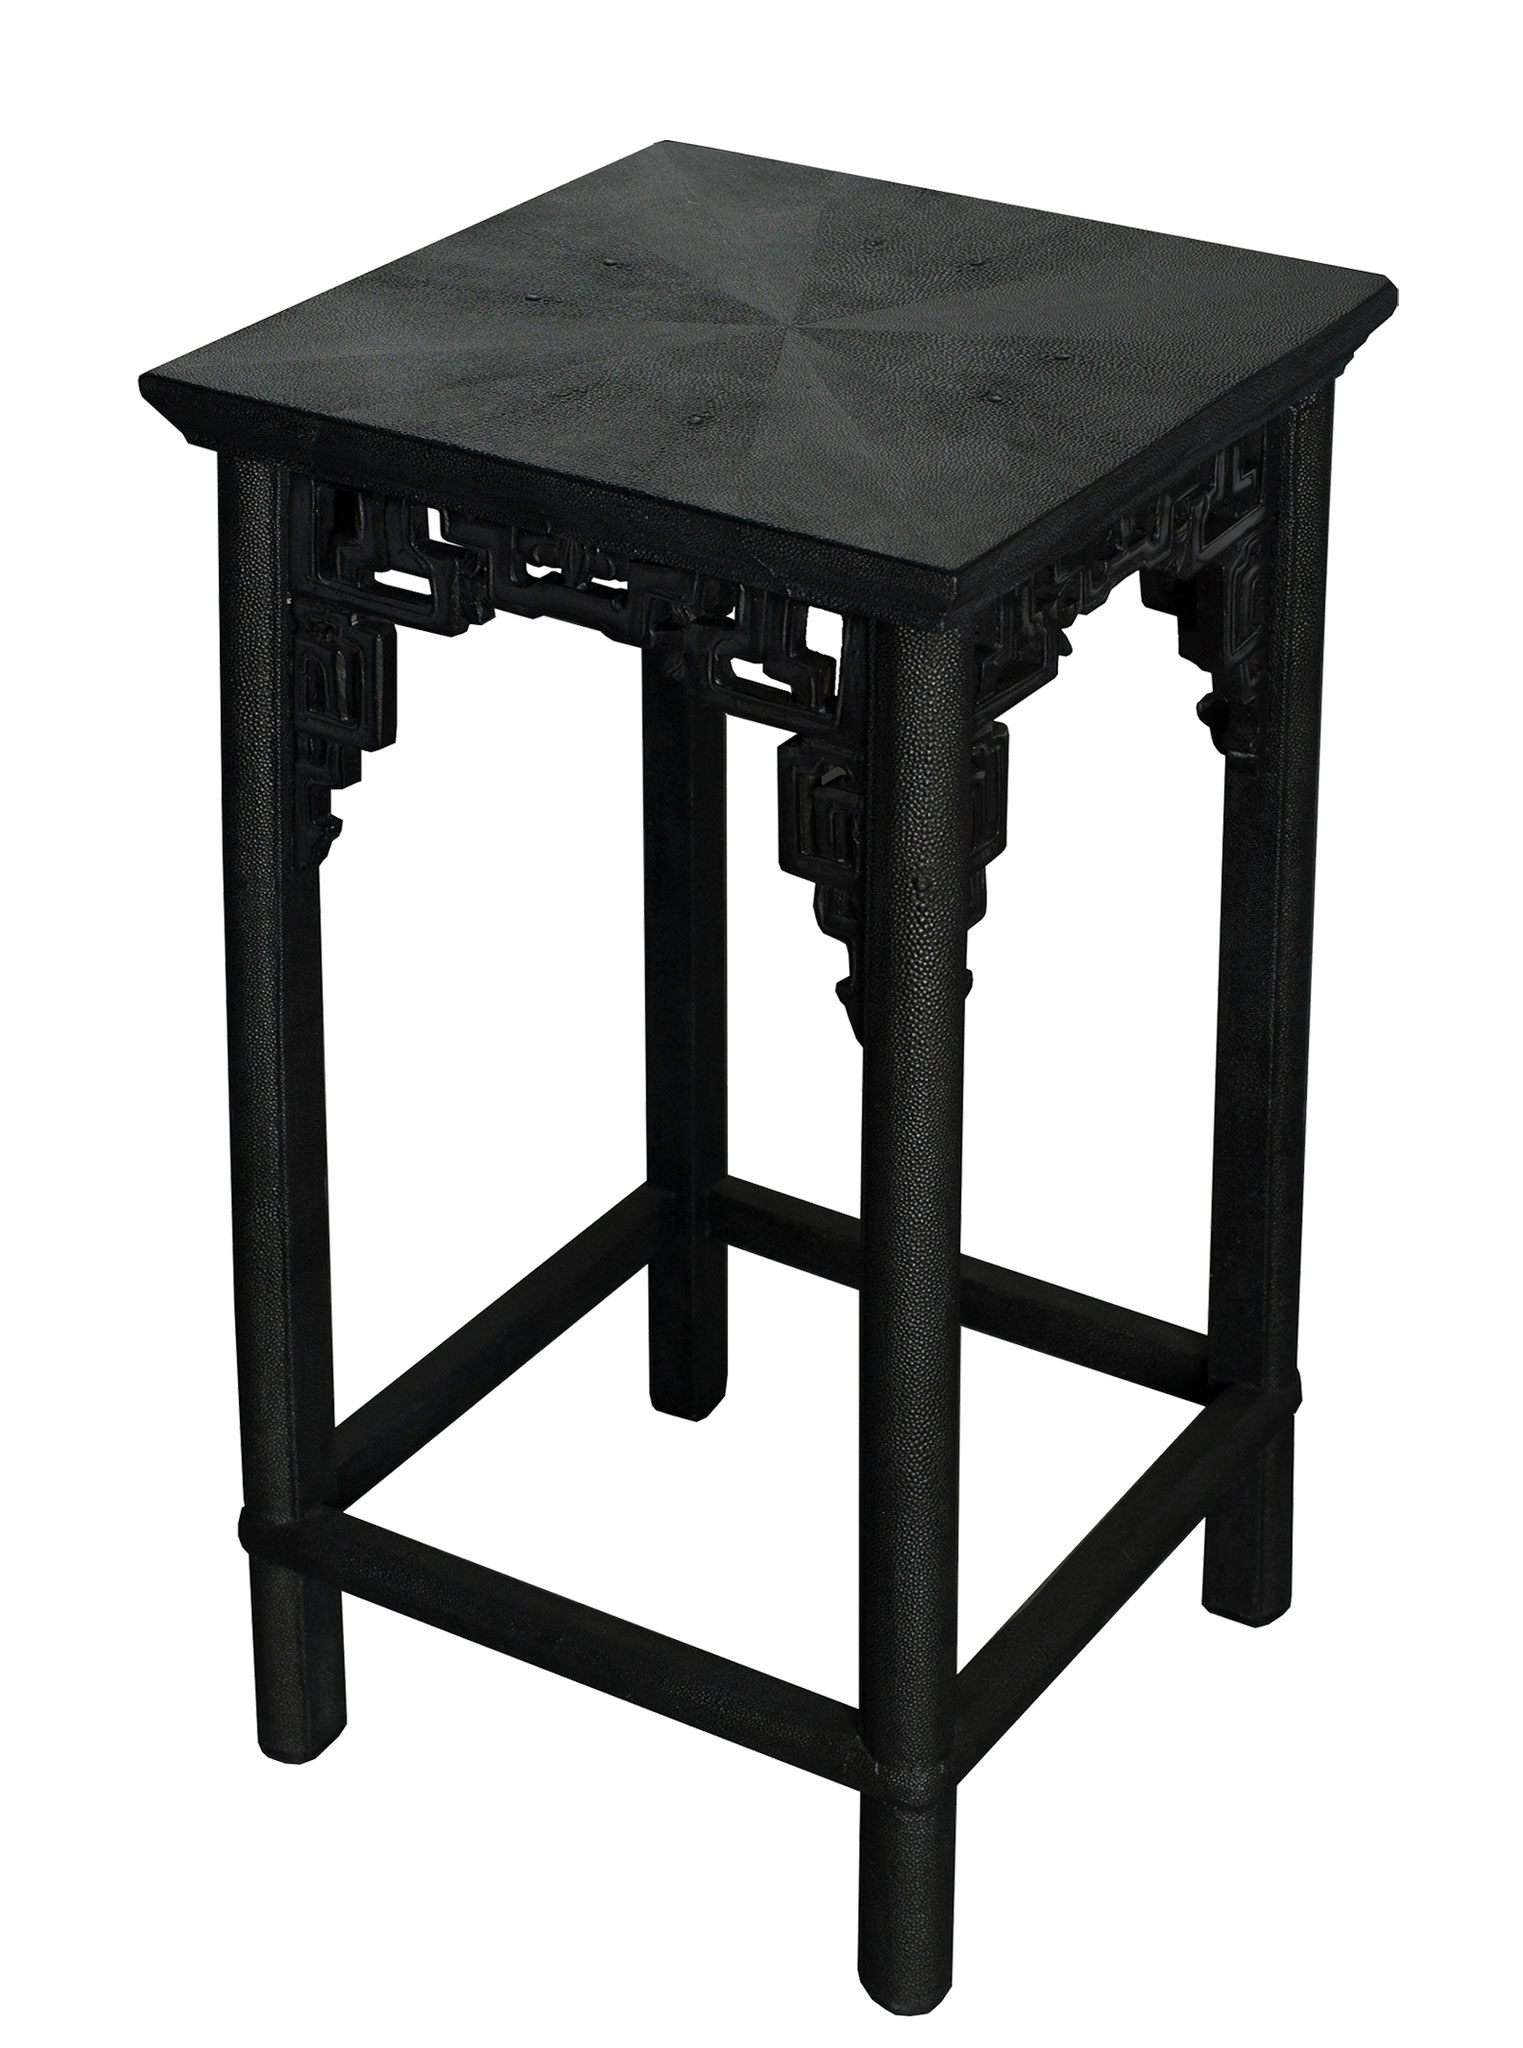 Console table covered with faux-shagreen - Vintage piece from Beijing - 53 x 26 x 78 cm